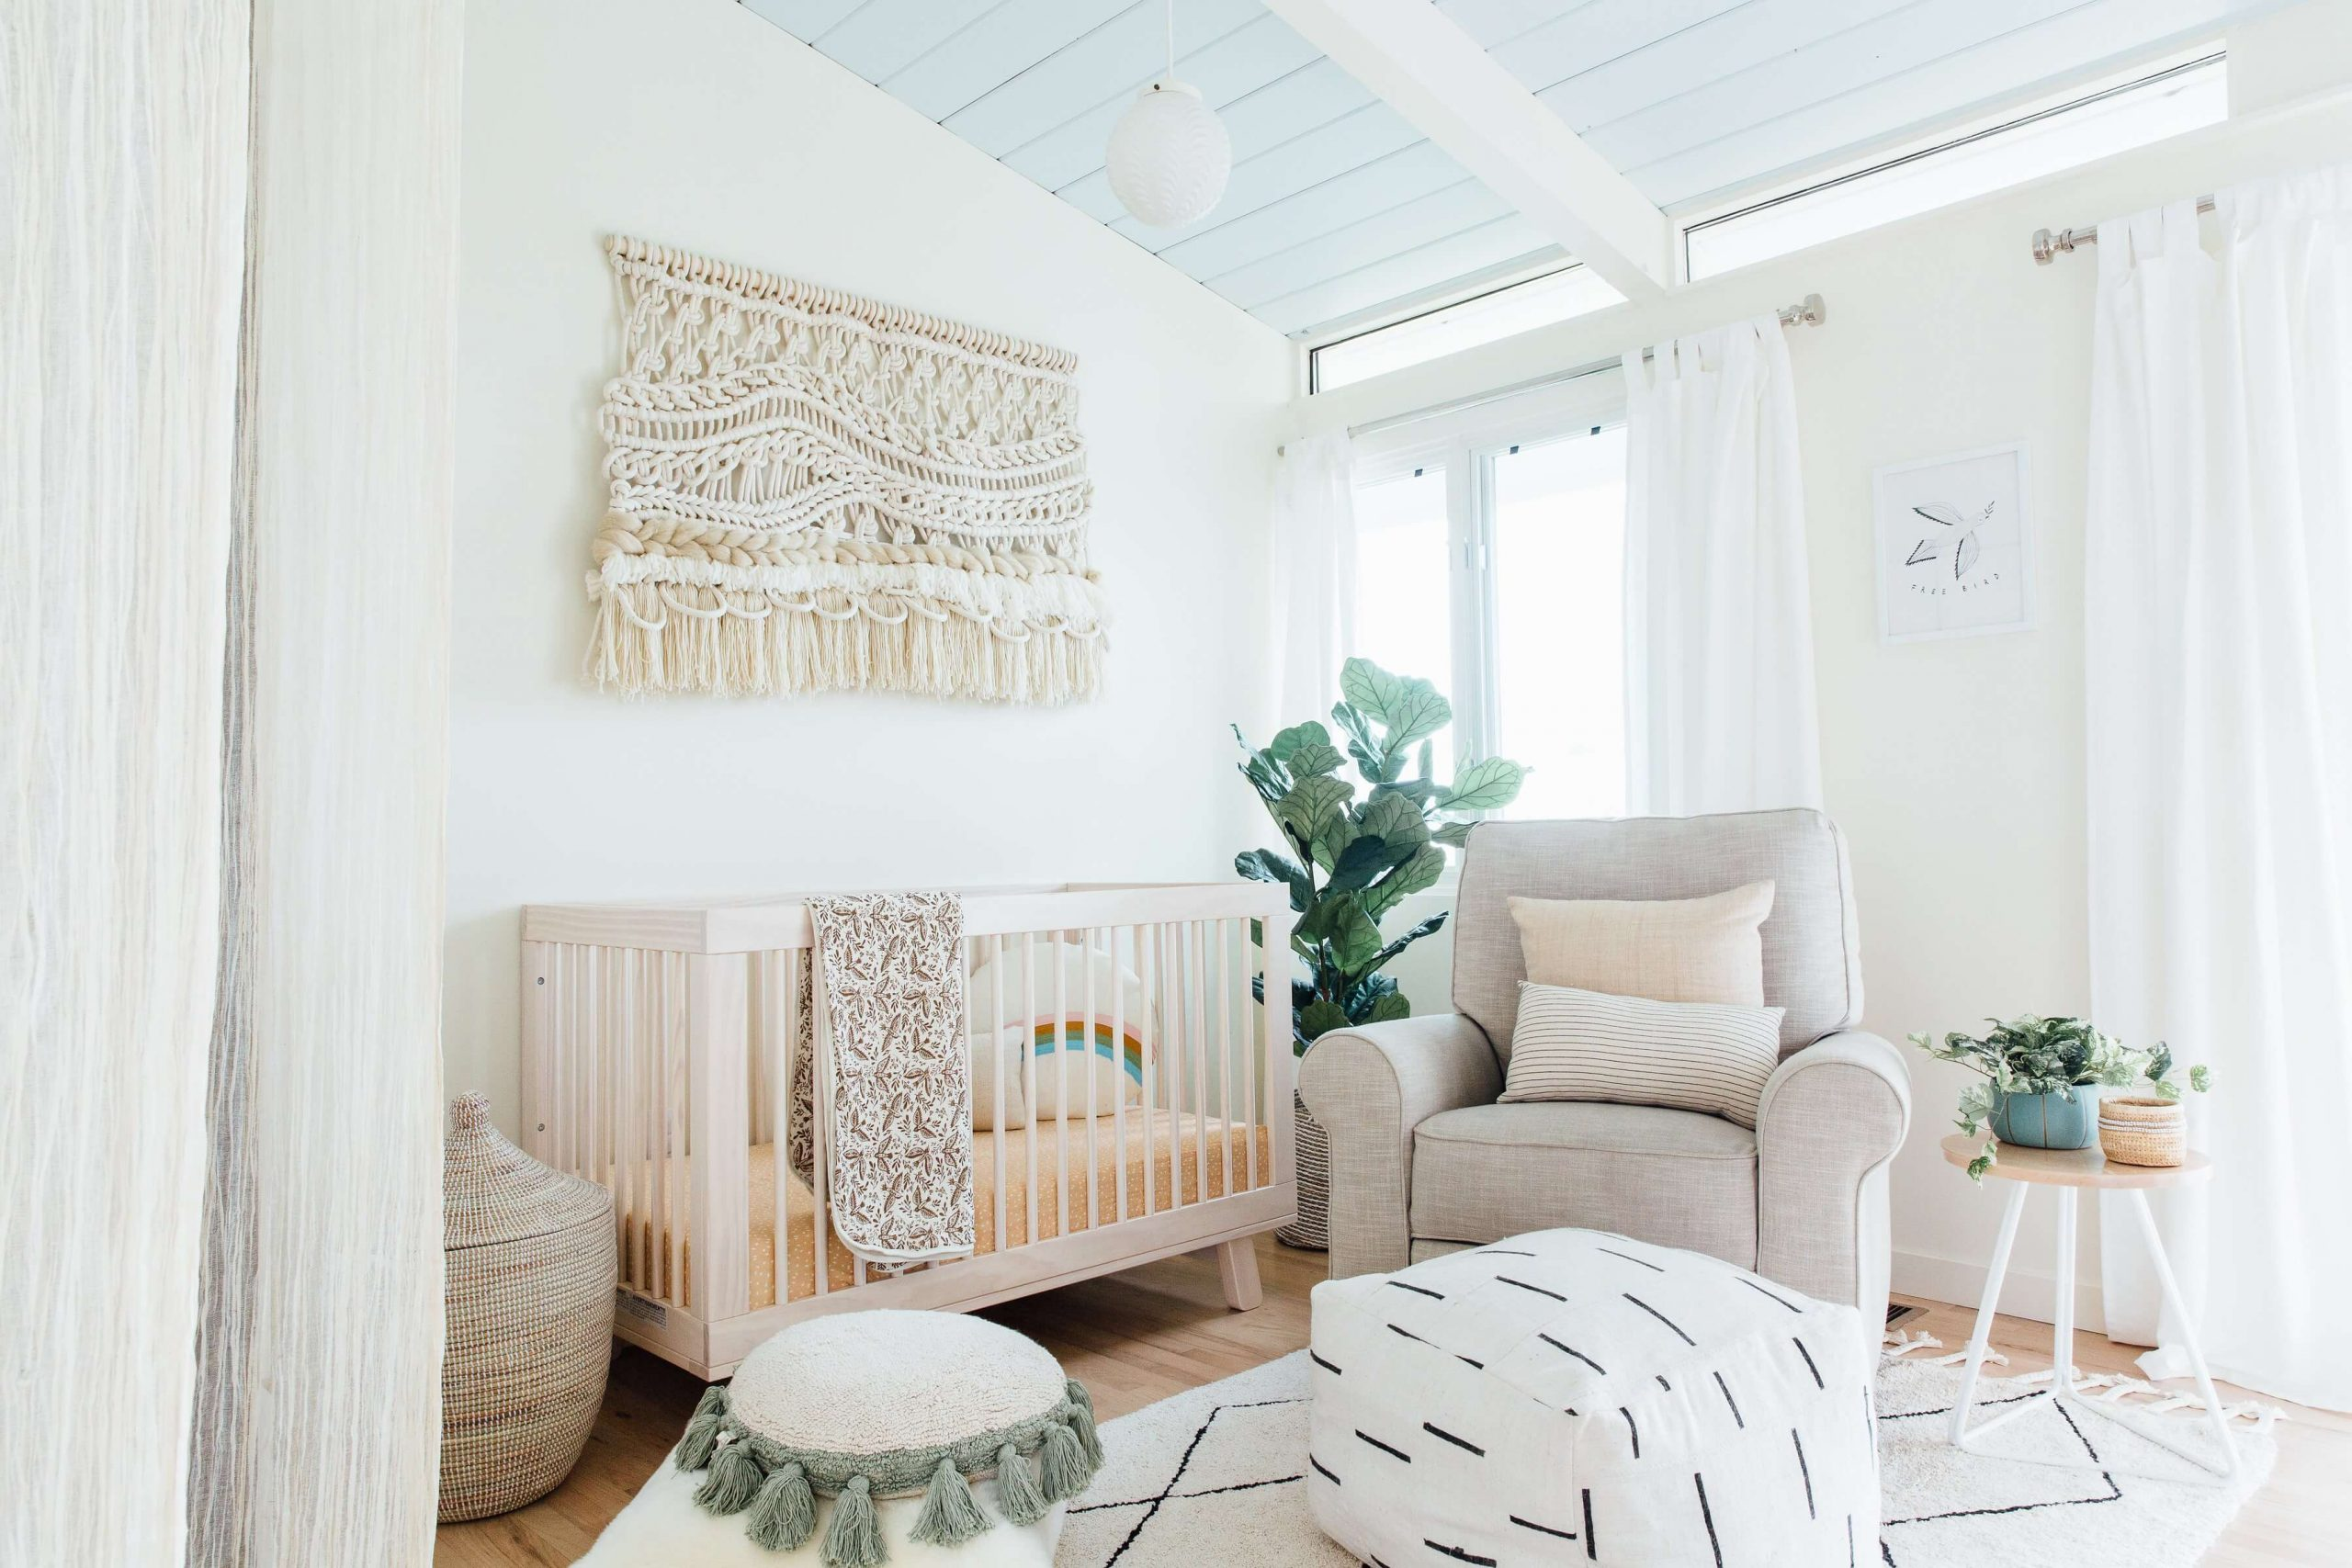 neutral nursery design with fringe wall hanging over crib